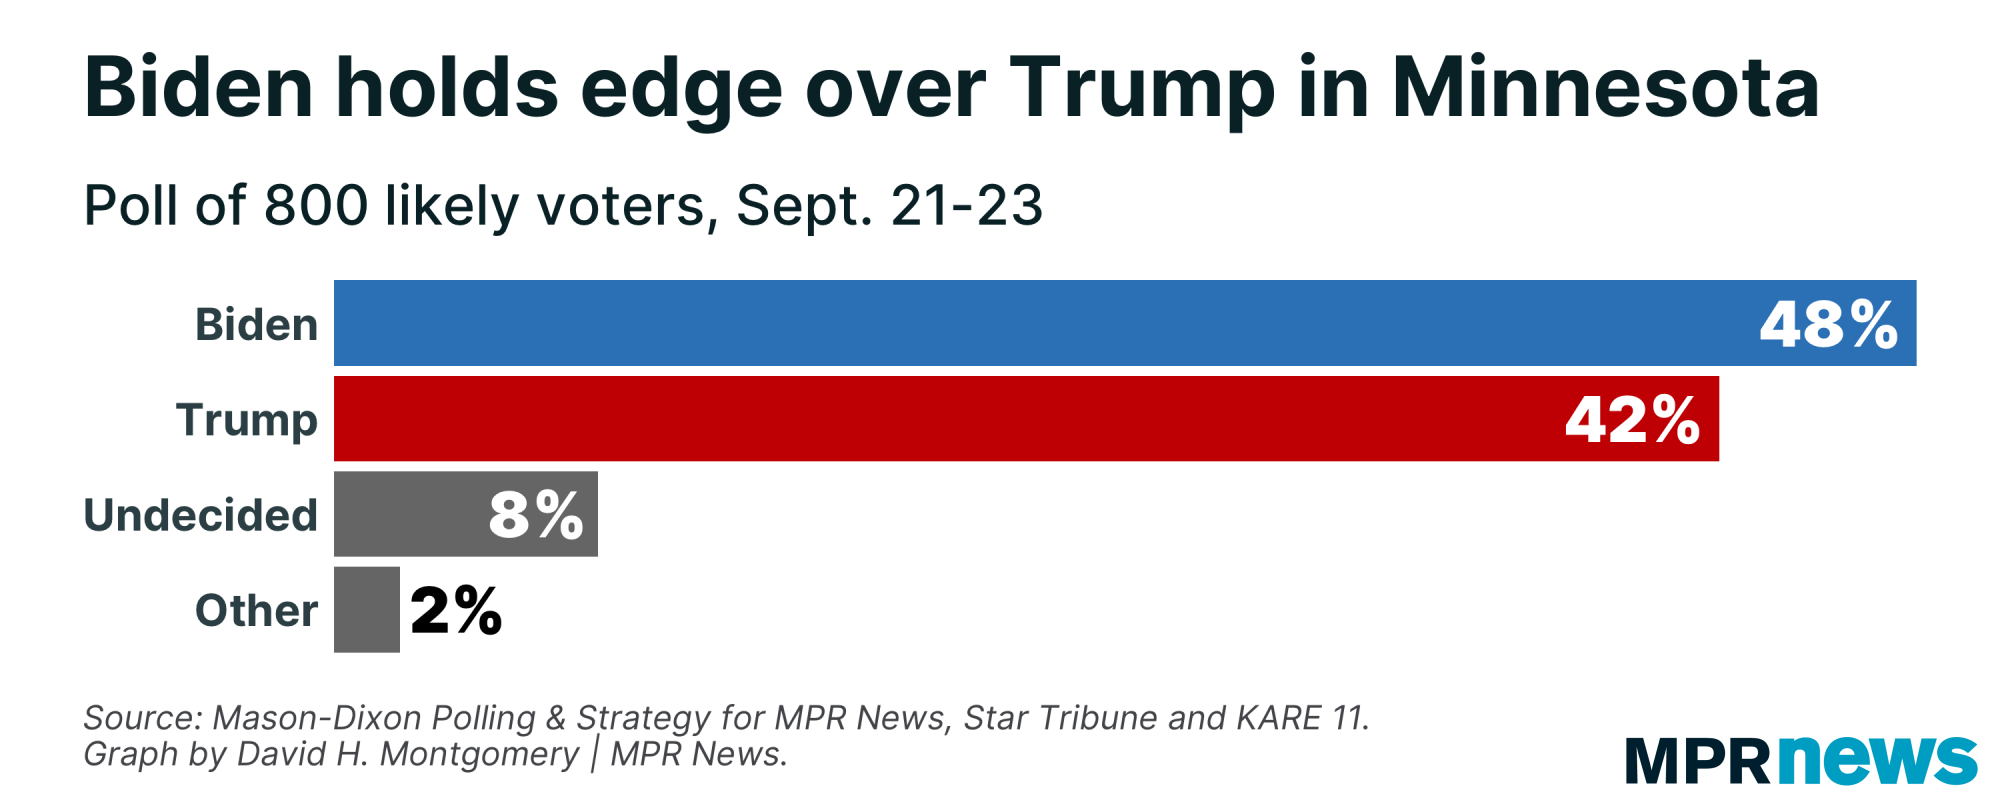 48% of likely Minnesota voters back Biden, vs. 42% for Trump